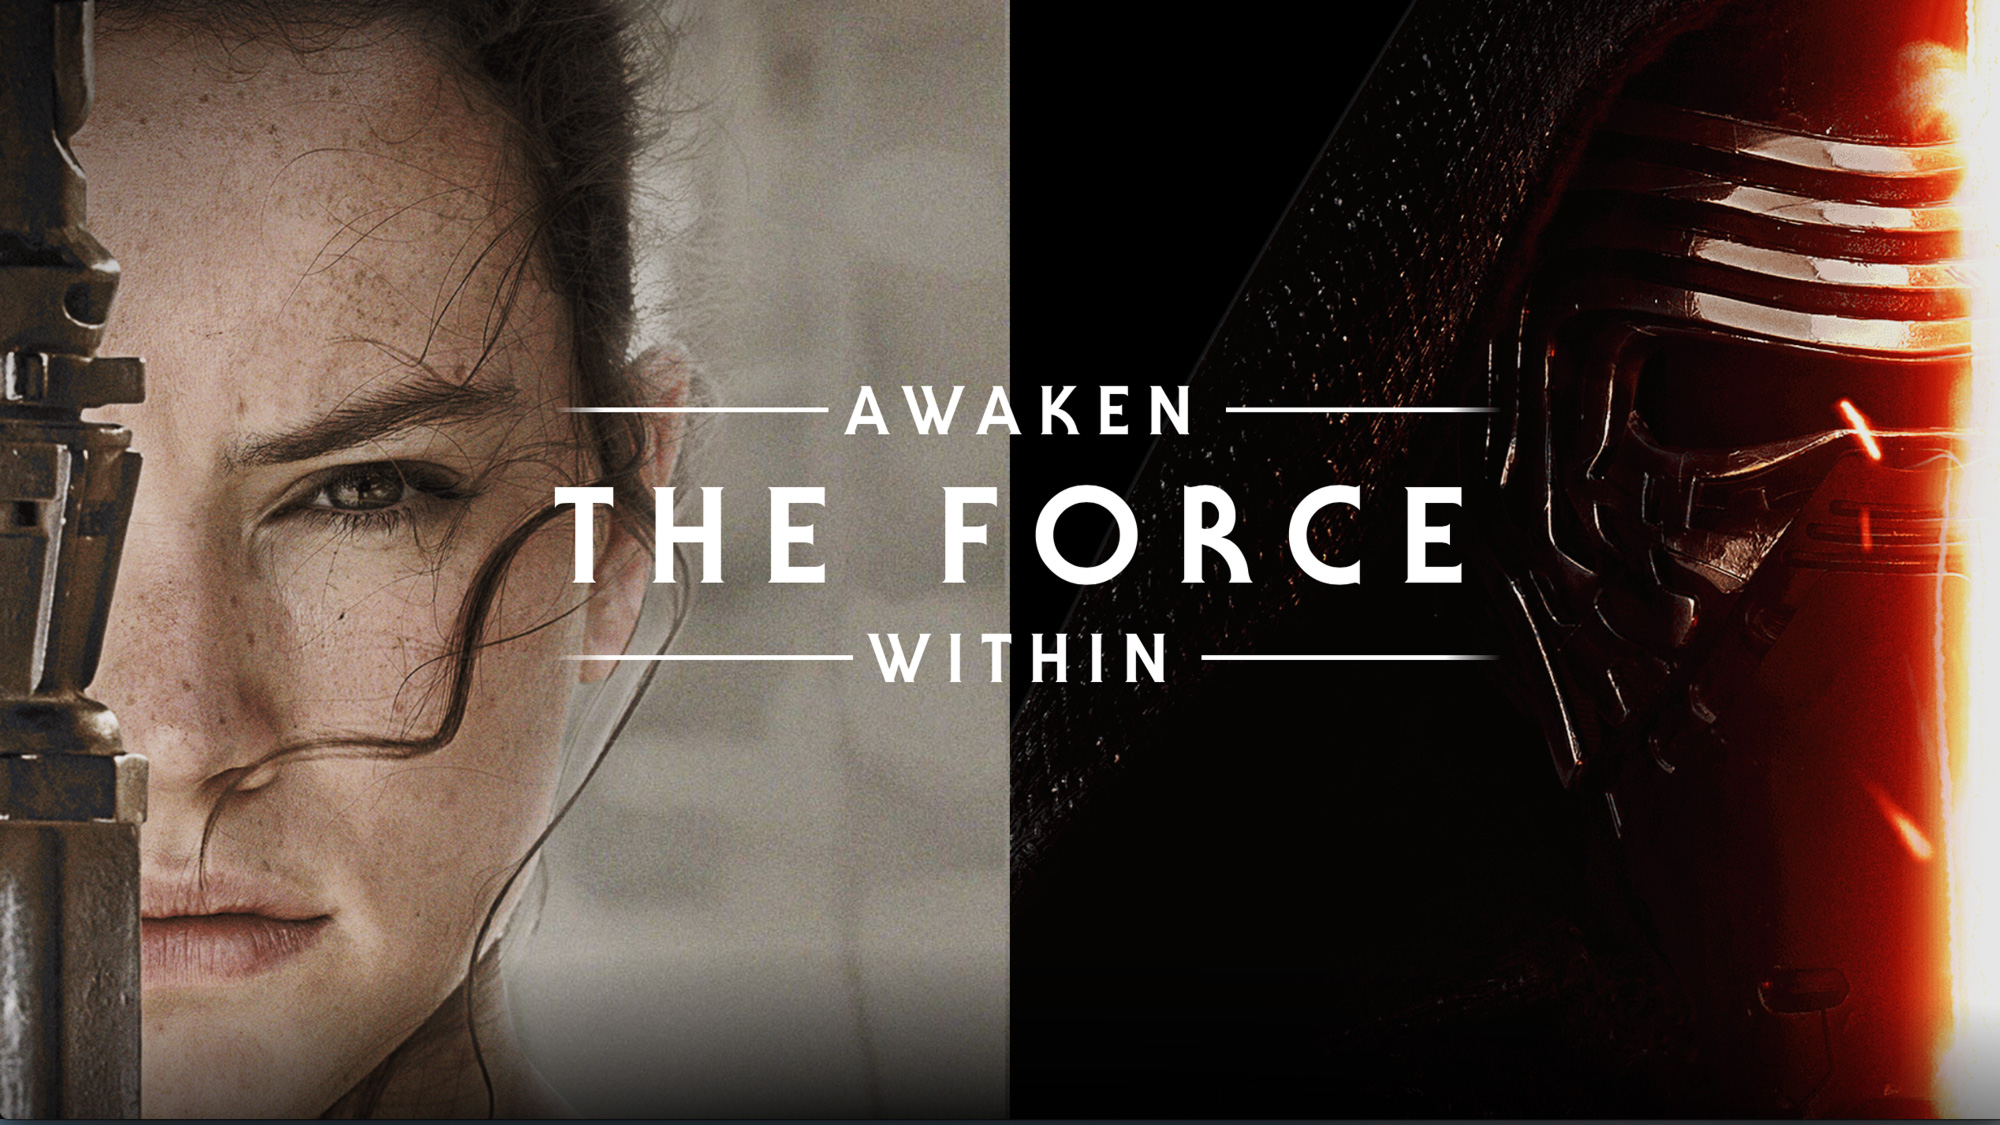 Google Lets You Choose The Light Side Or The Dark Side With This Star Wars Redesign Quartz